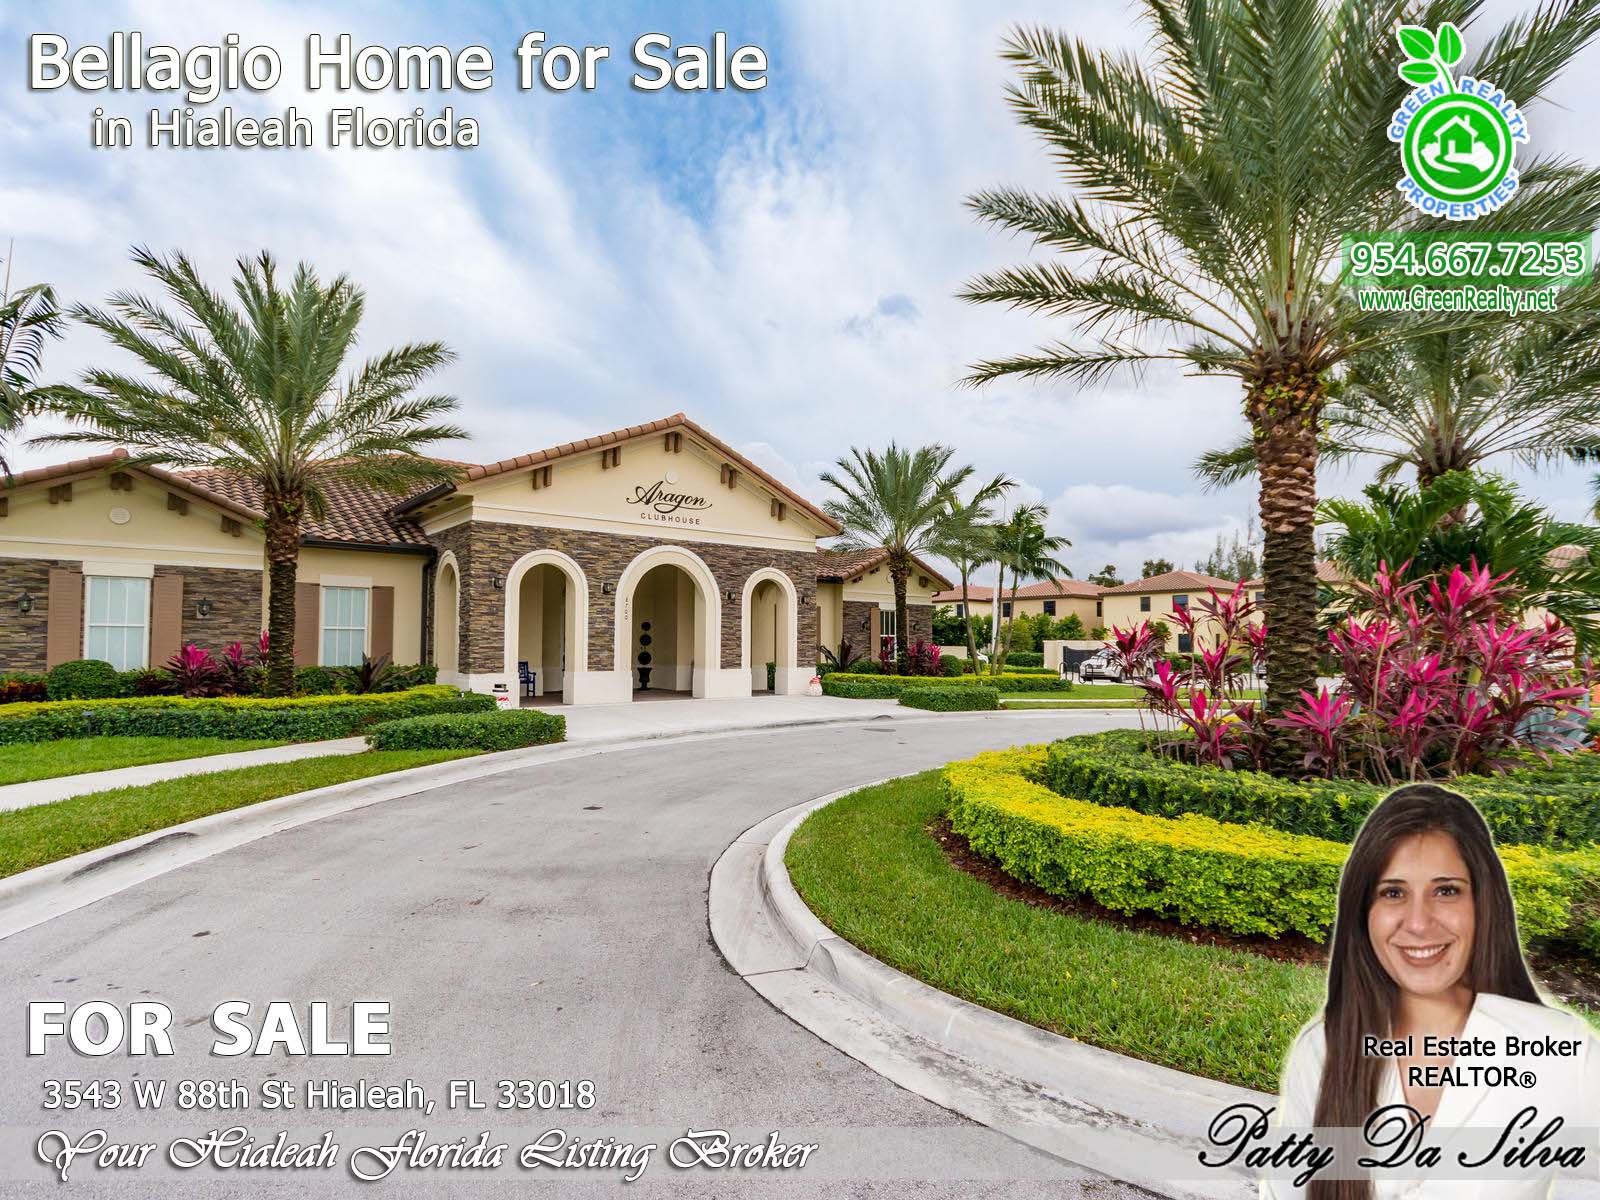 South florida homes for sale by broker Patty da silva of green realty properties (10)